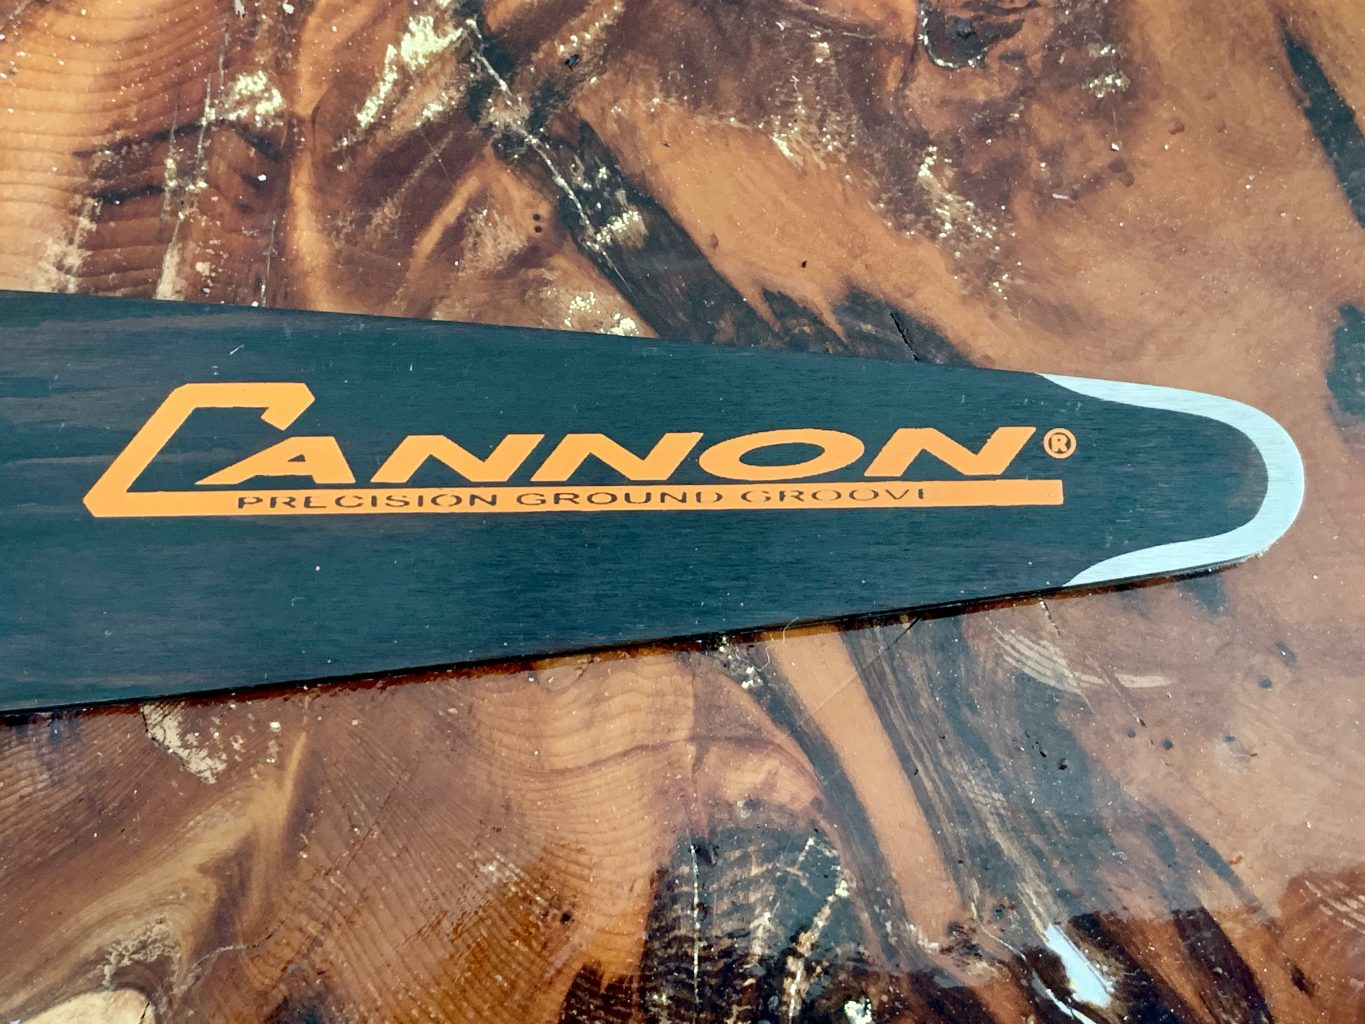 """CCT-S1-24-50 Cannon Carving Toonie Tip 24""""[63cm] 3/8 Lo Pro .050 82 drive links or .325 .050 92 drive links or 1/4 .050 118 drive links"""